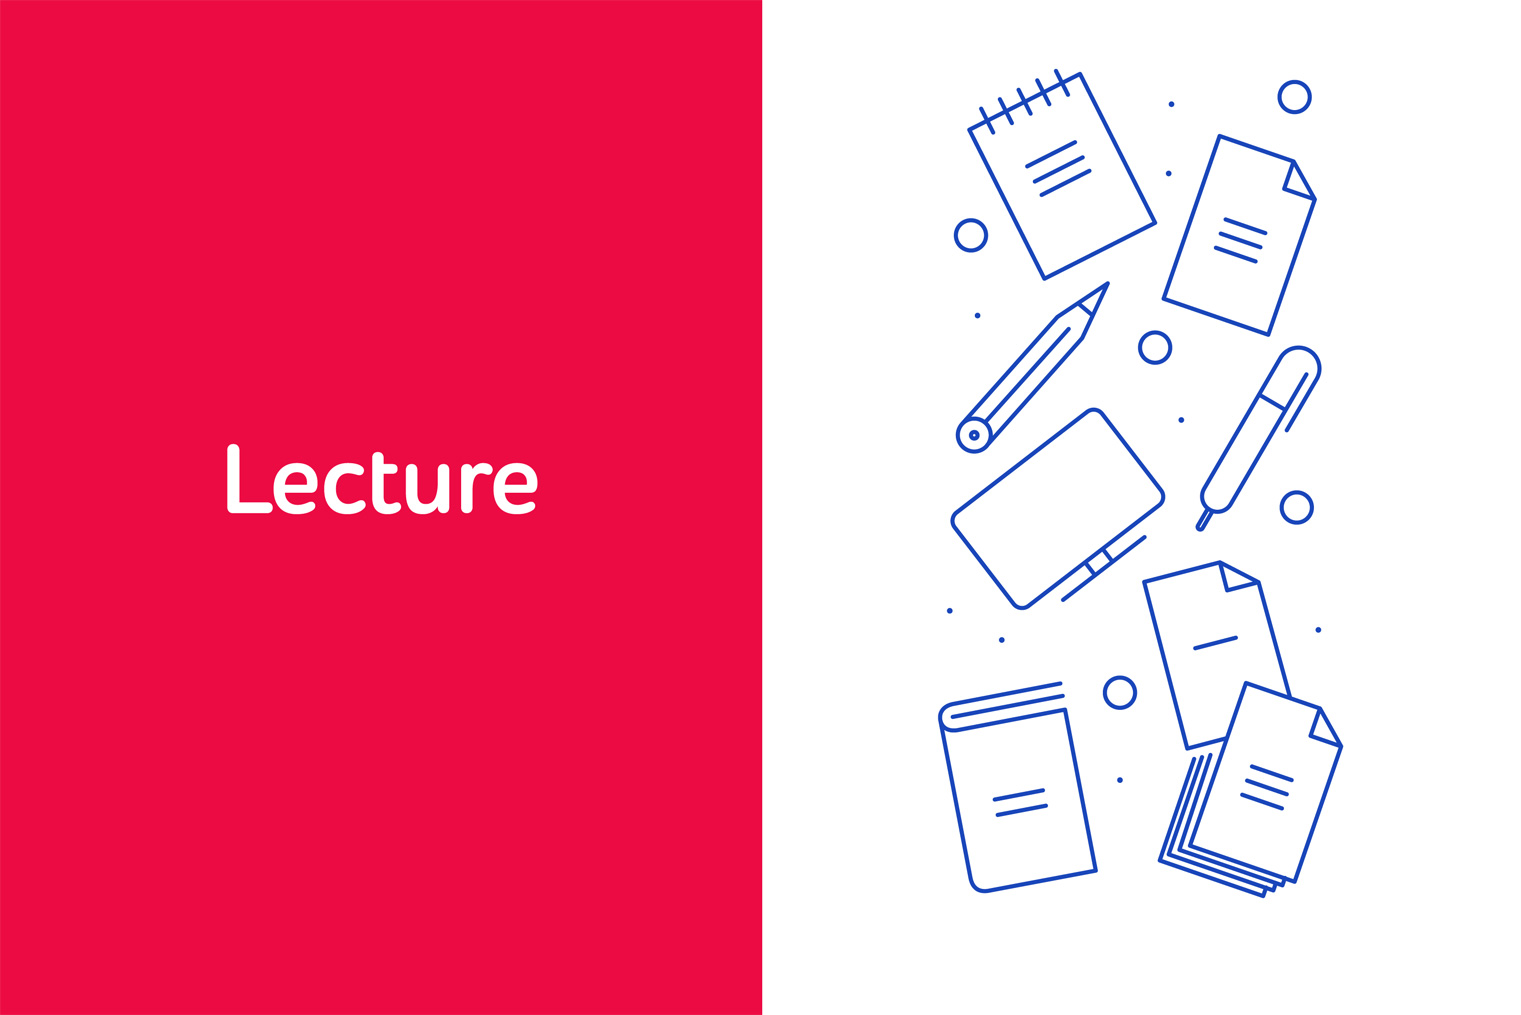 'Society 5.0. A concept of the digital society of the future' lecture